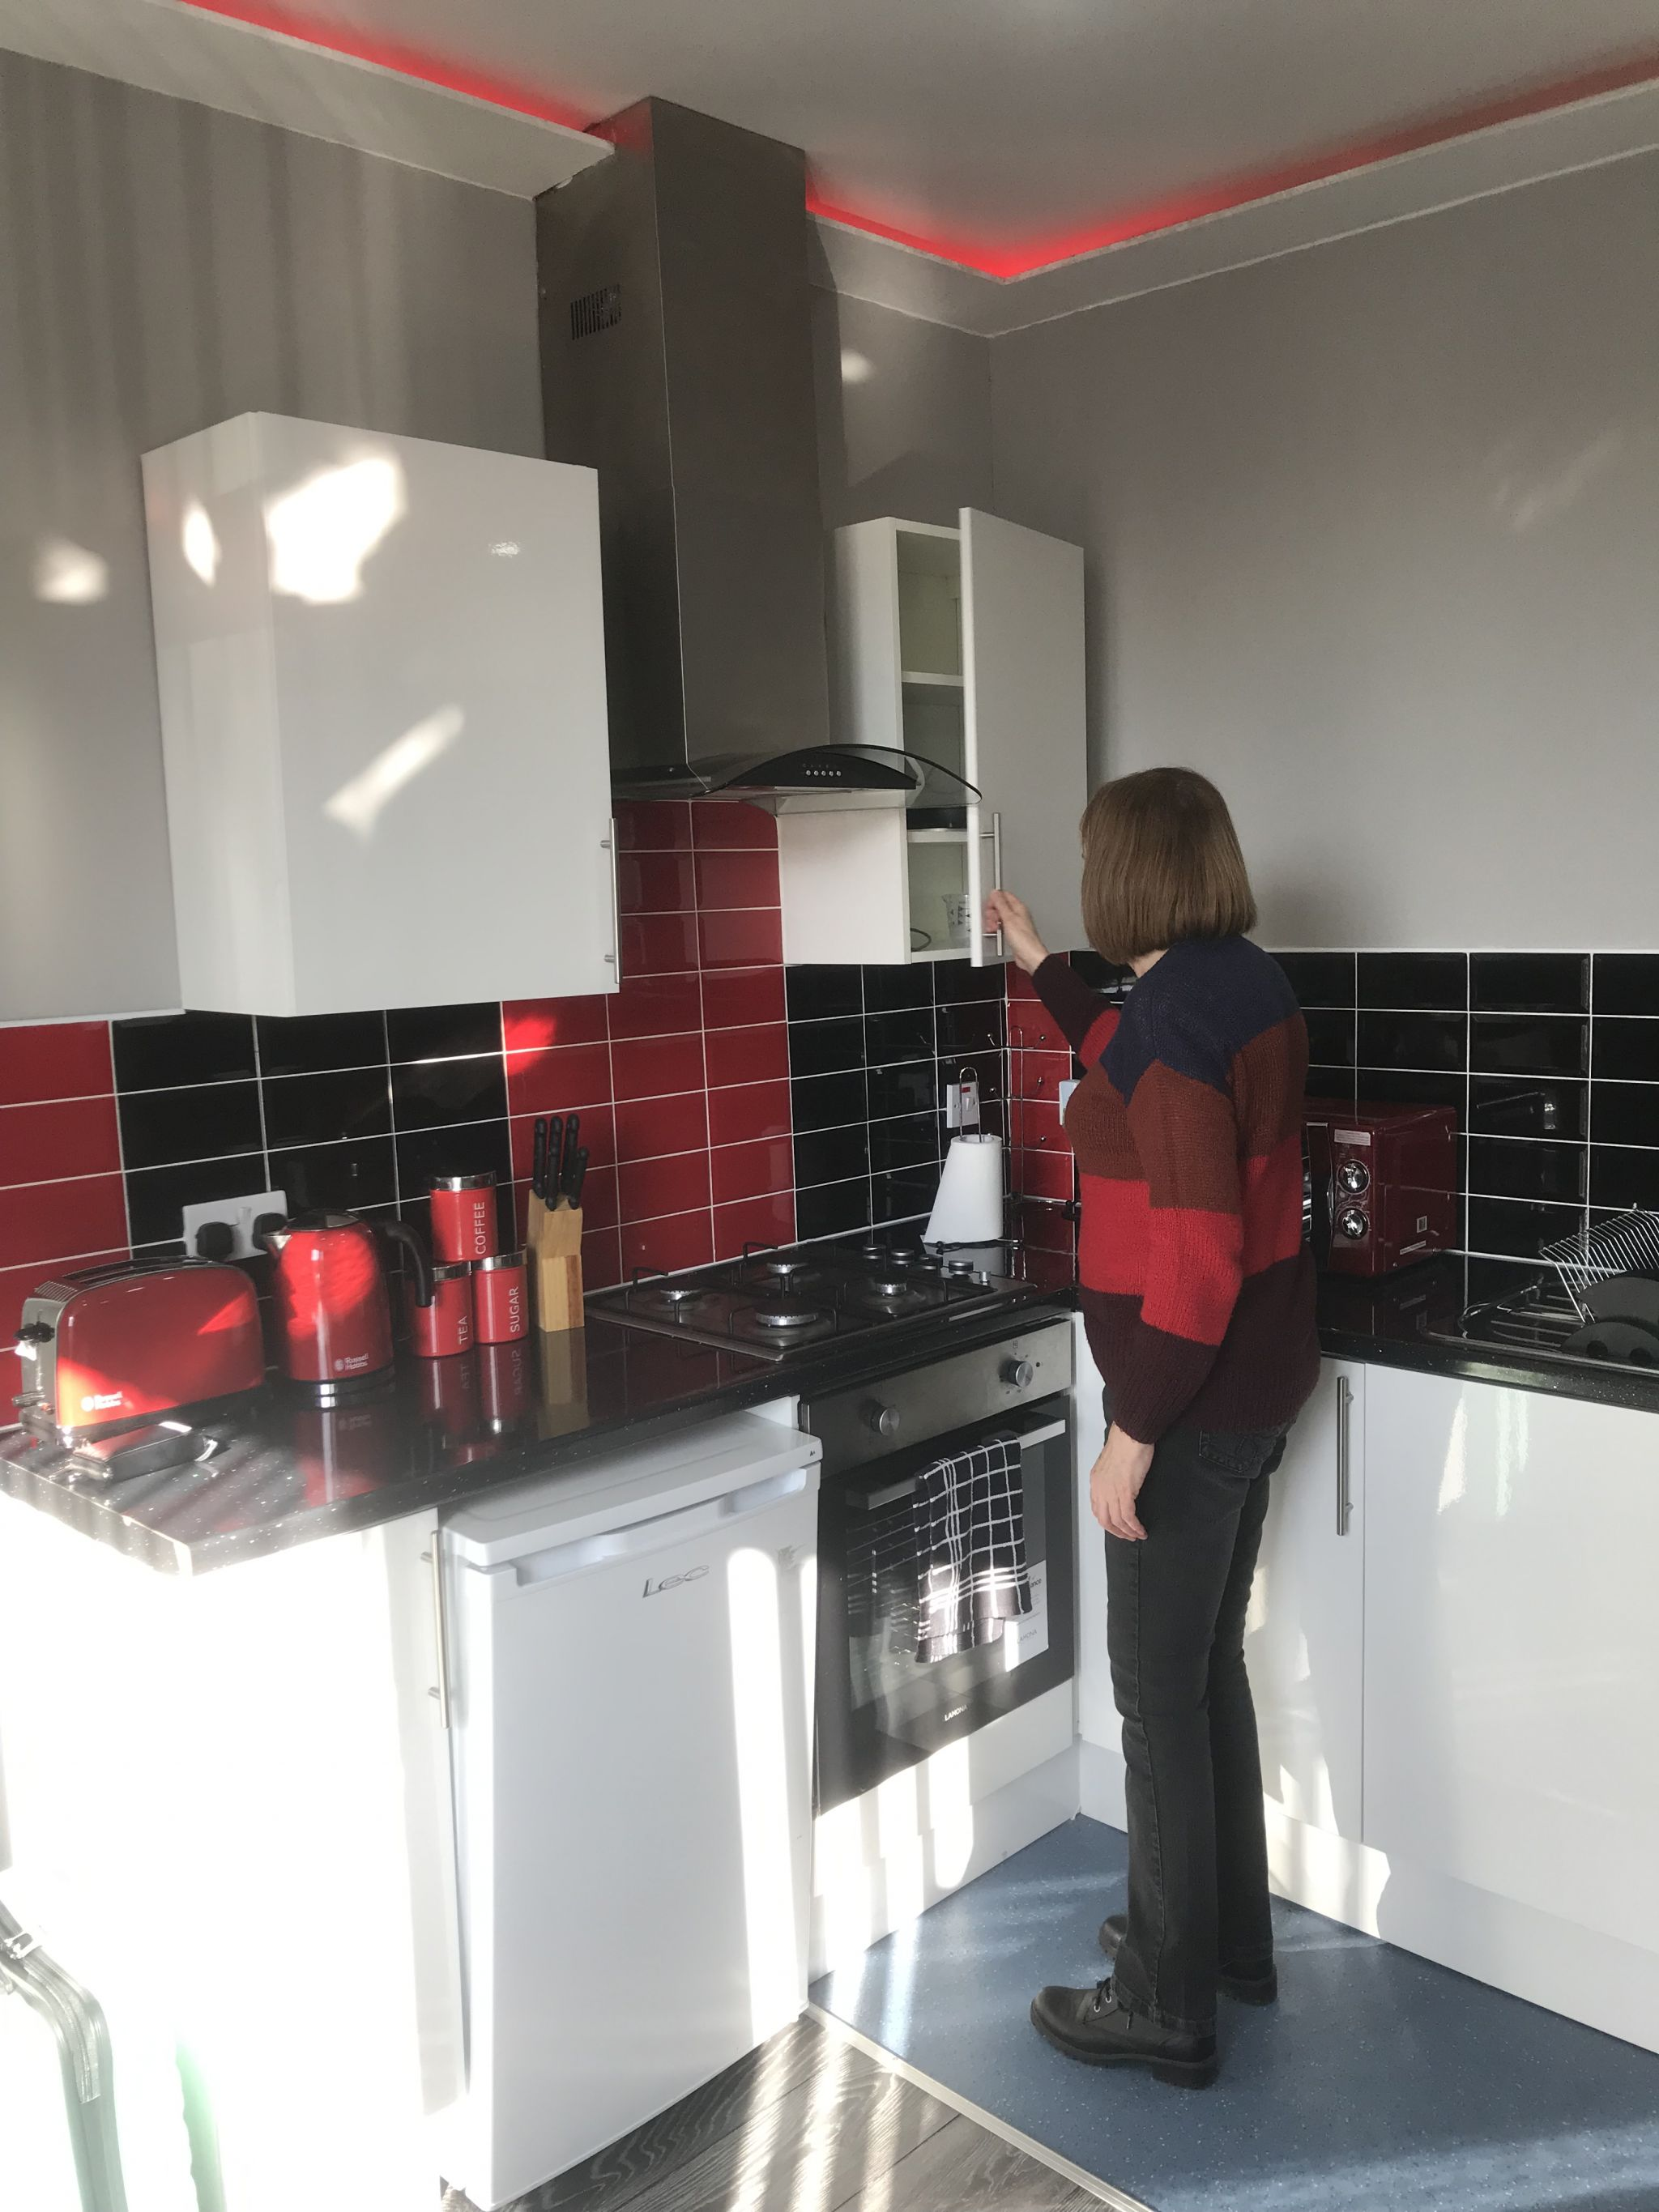 Mum is the apartment kitchen